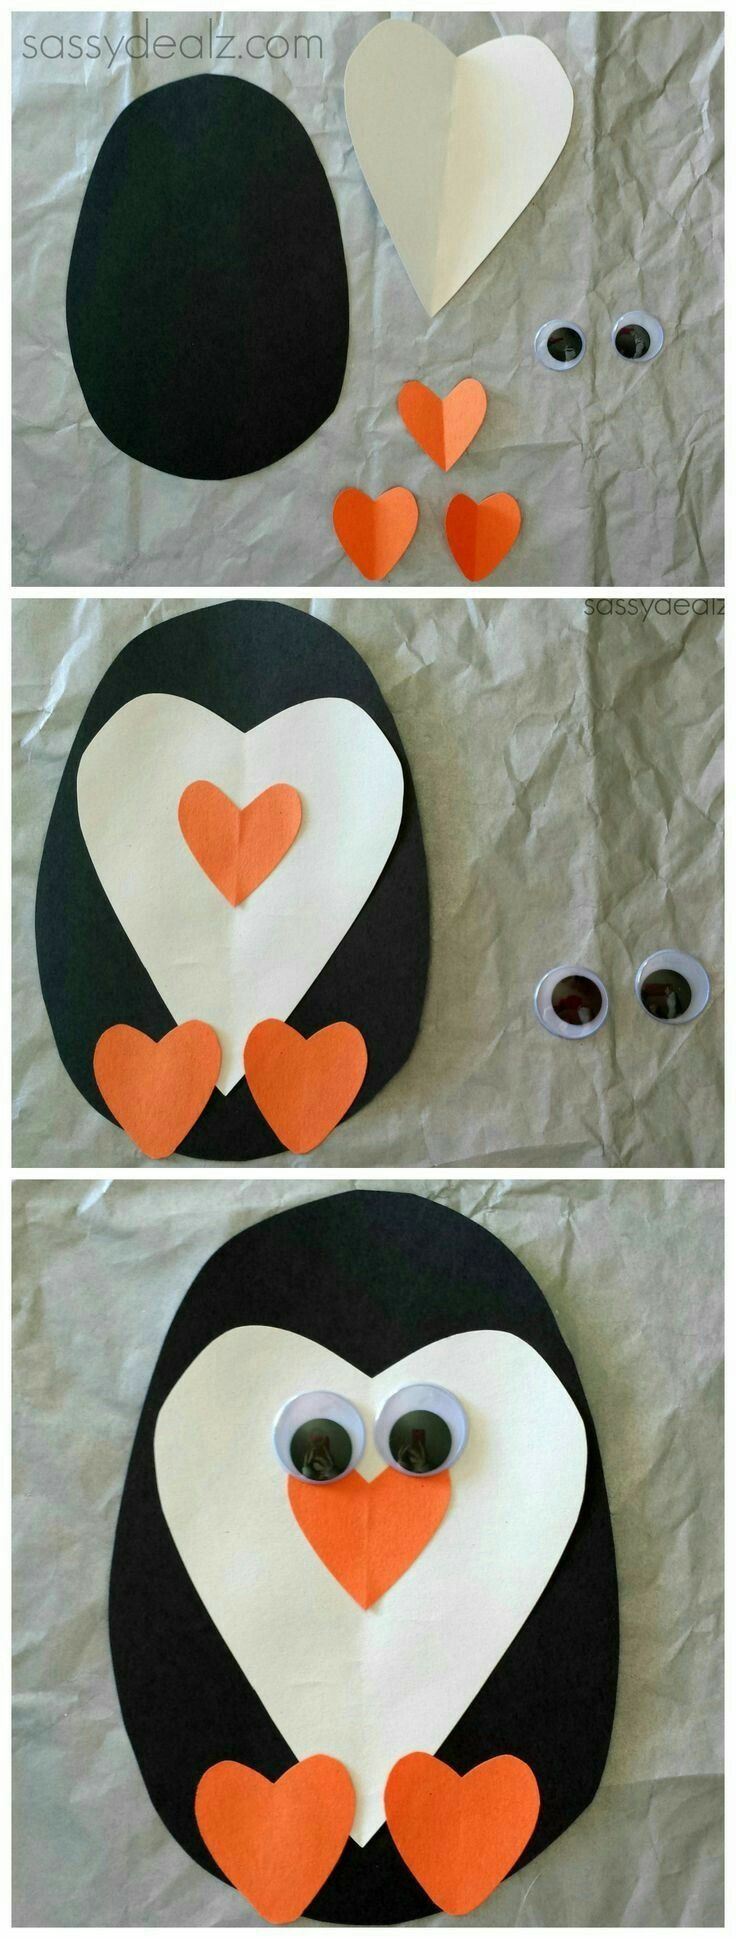 Paper Heart Penguin craft for kids.